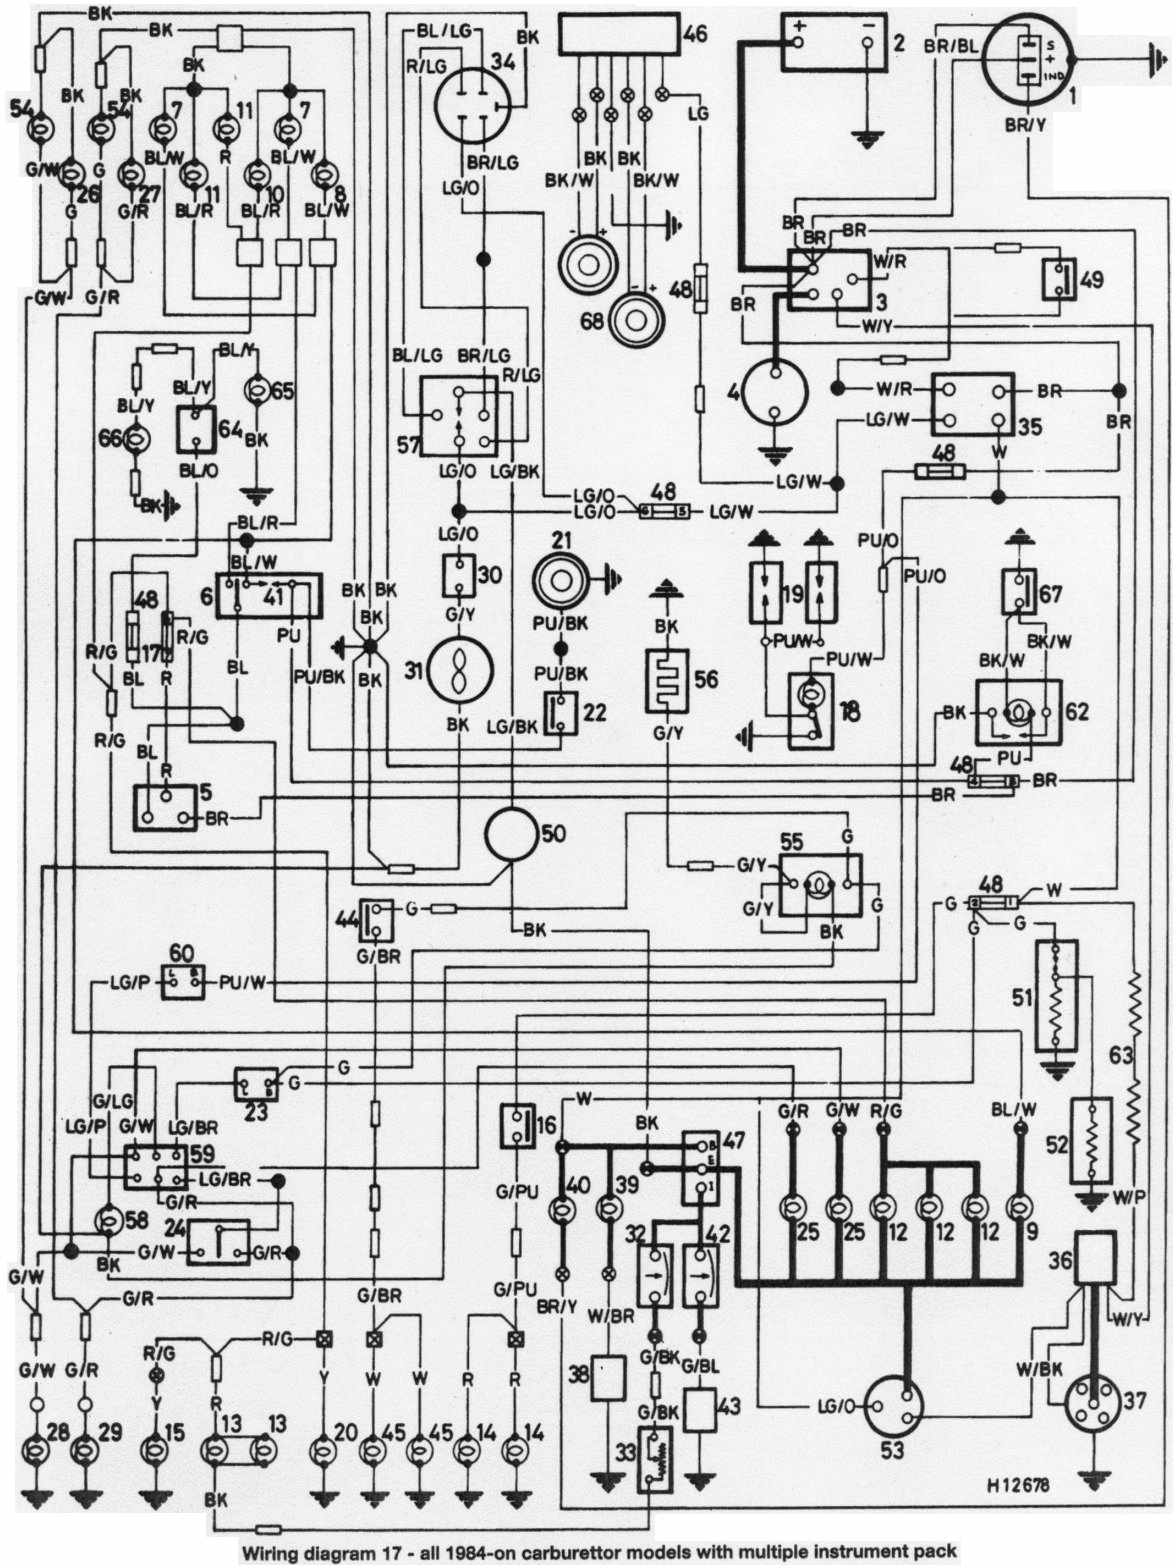 wiring diagram of 1984 onwards all mini series with multiple instrument pack?t=1508499130 mini car manuals, wiring diagrams pdf & fault codes mini r56 wiring diagram pdf at mifinder.co